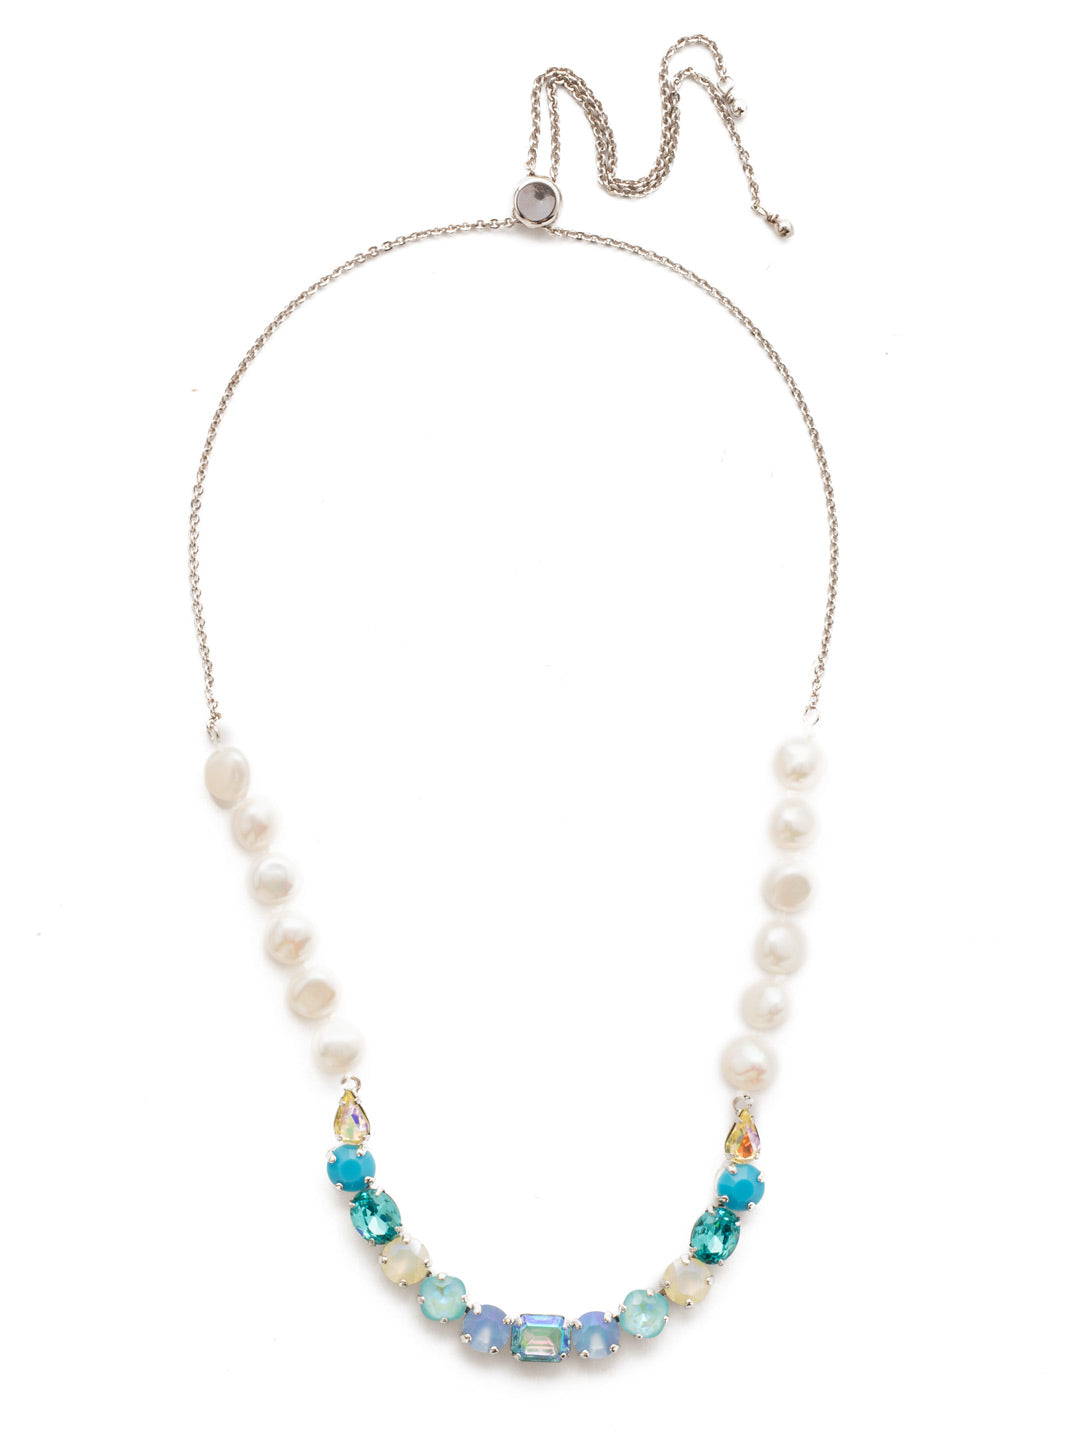 Cadenza Tennis Necklace - NEH26RHTHT